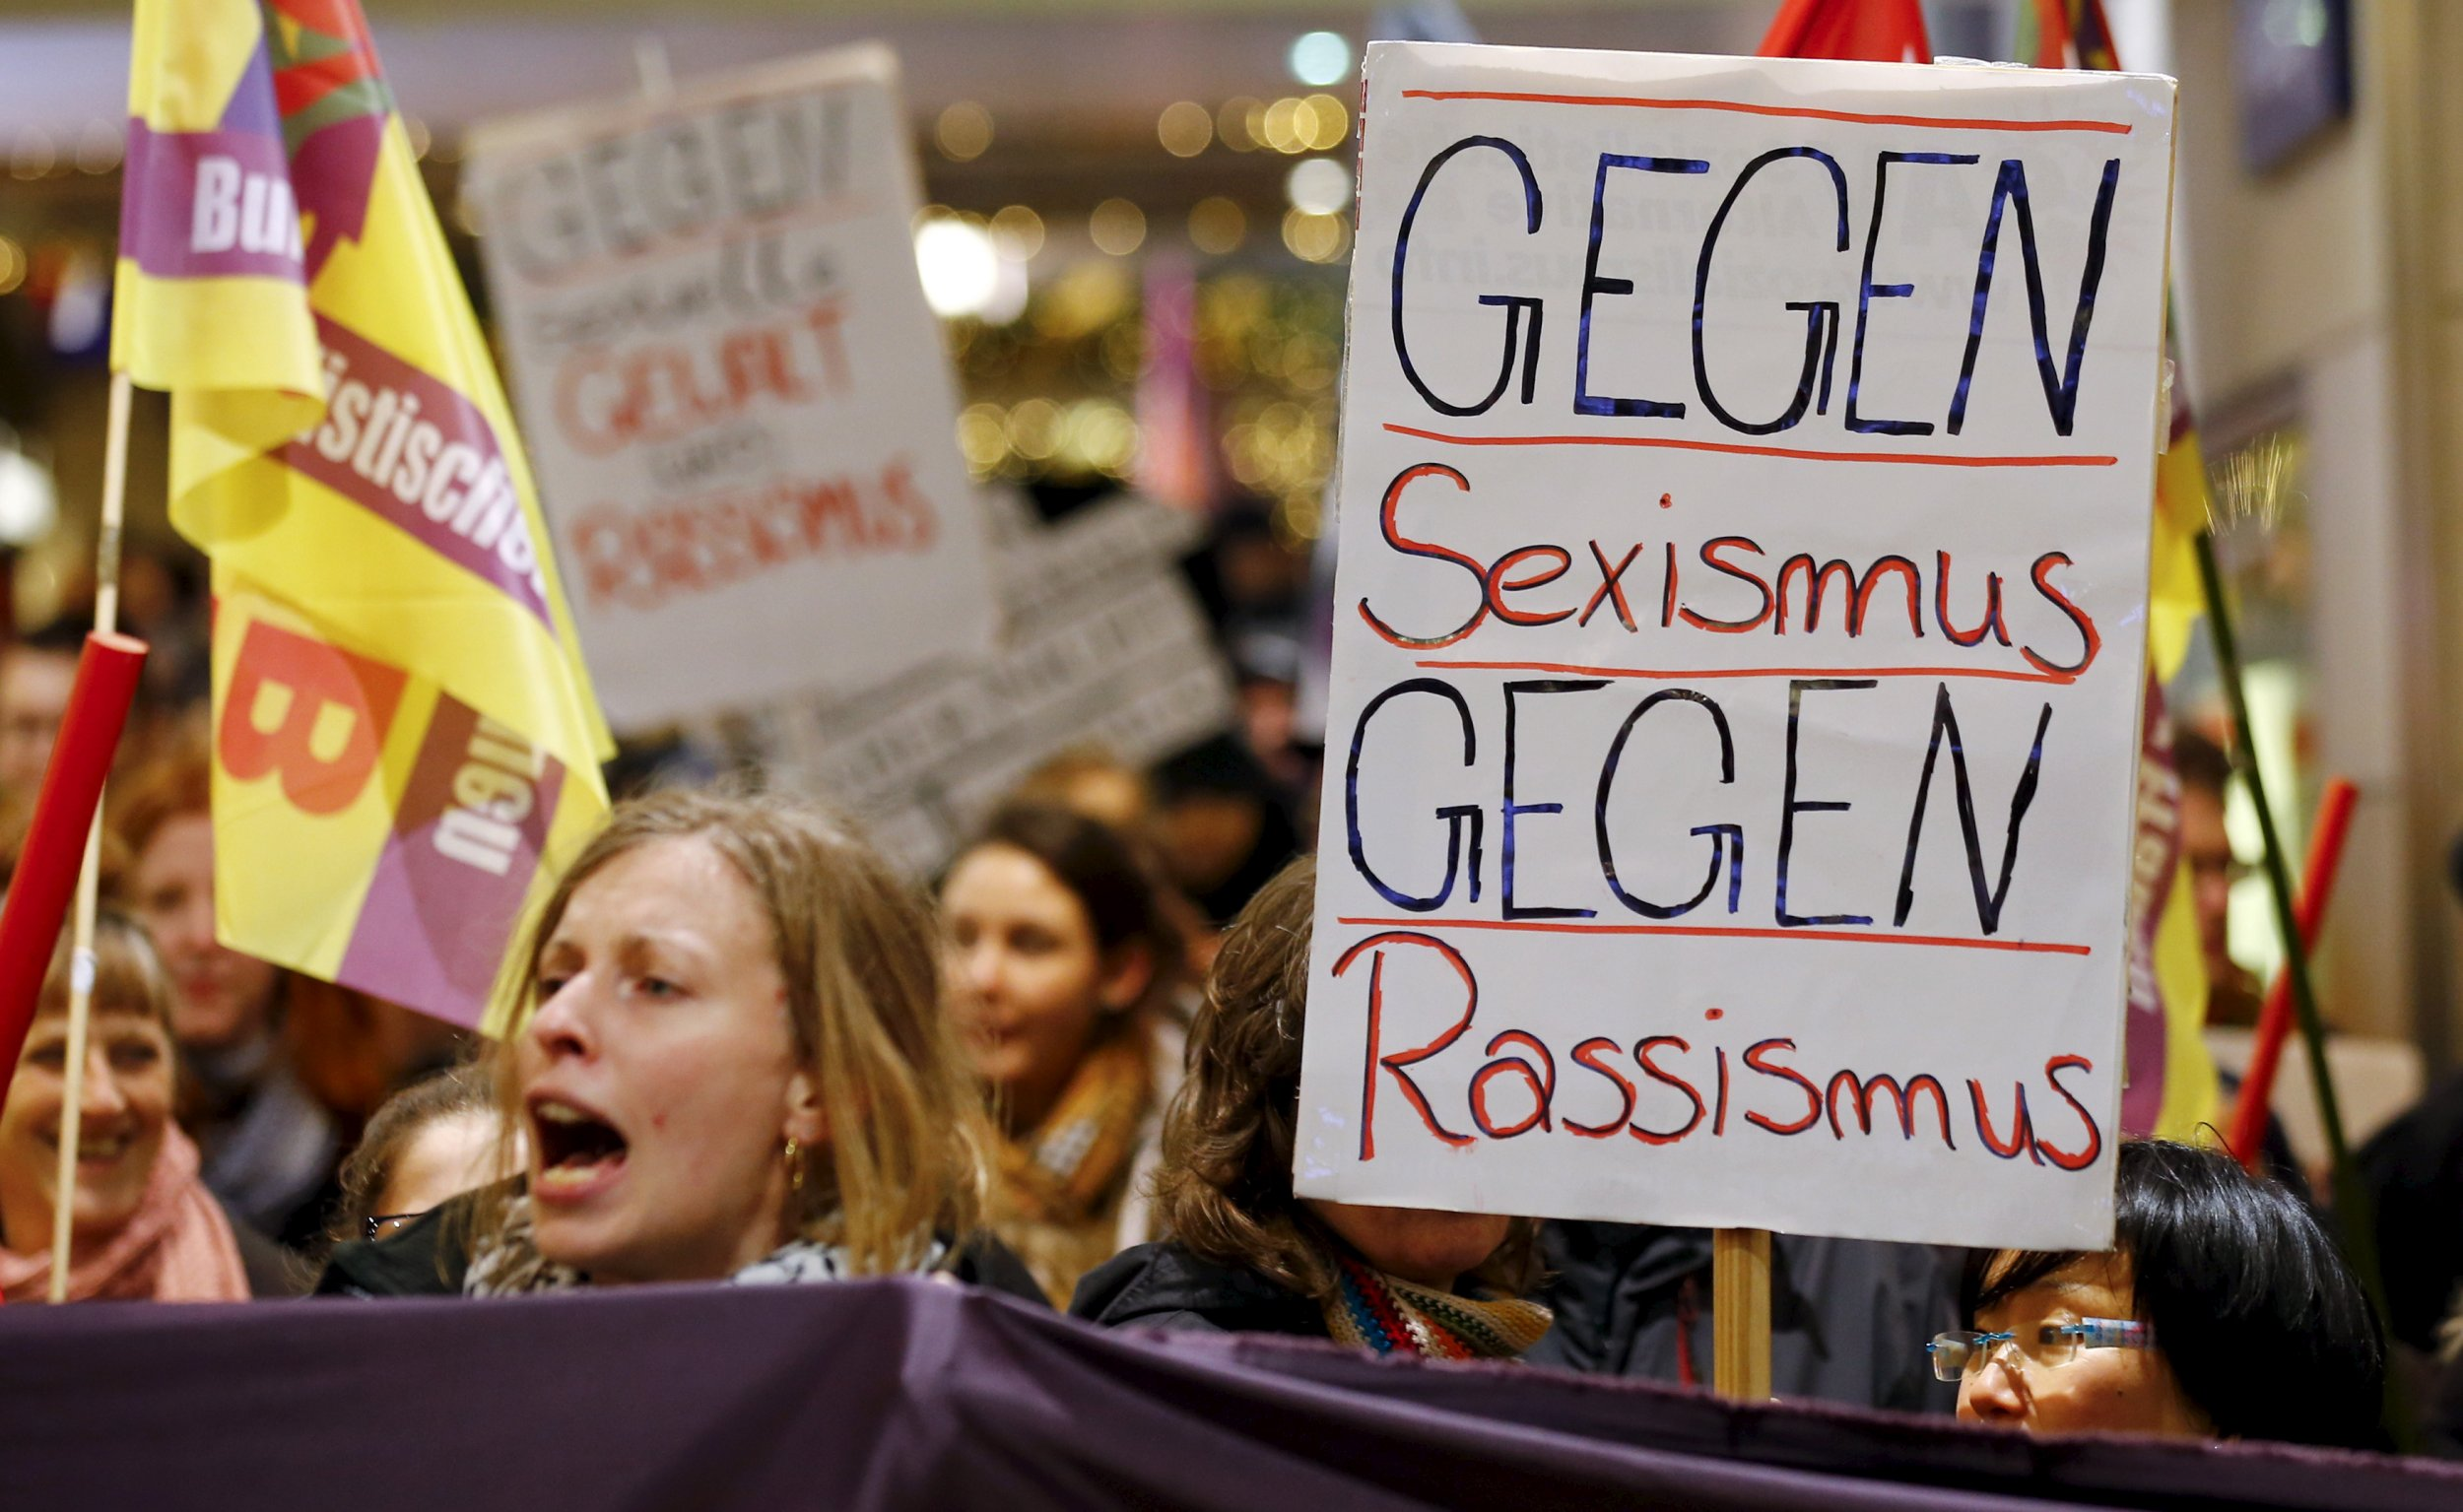 Cologne sexual assaults